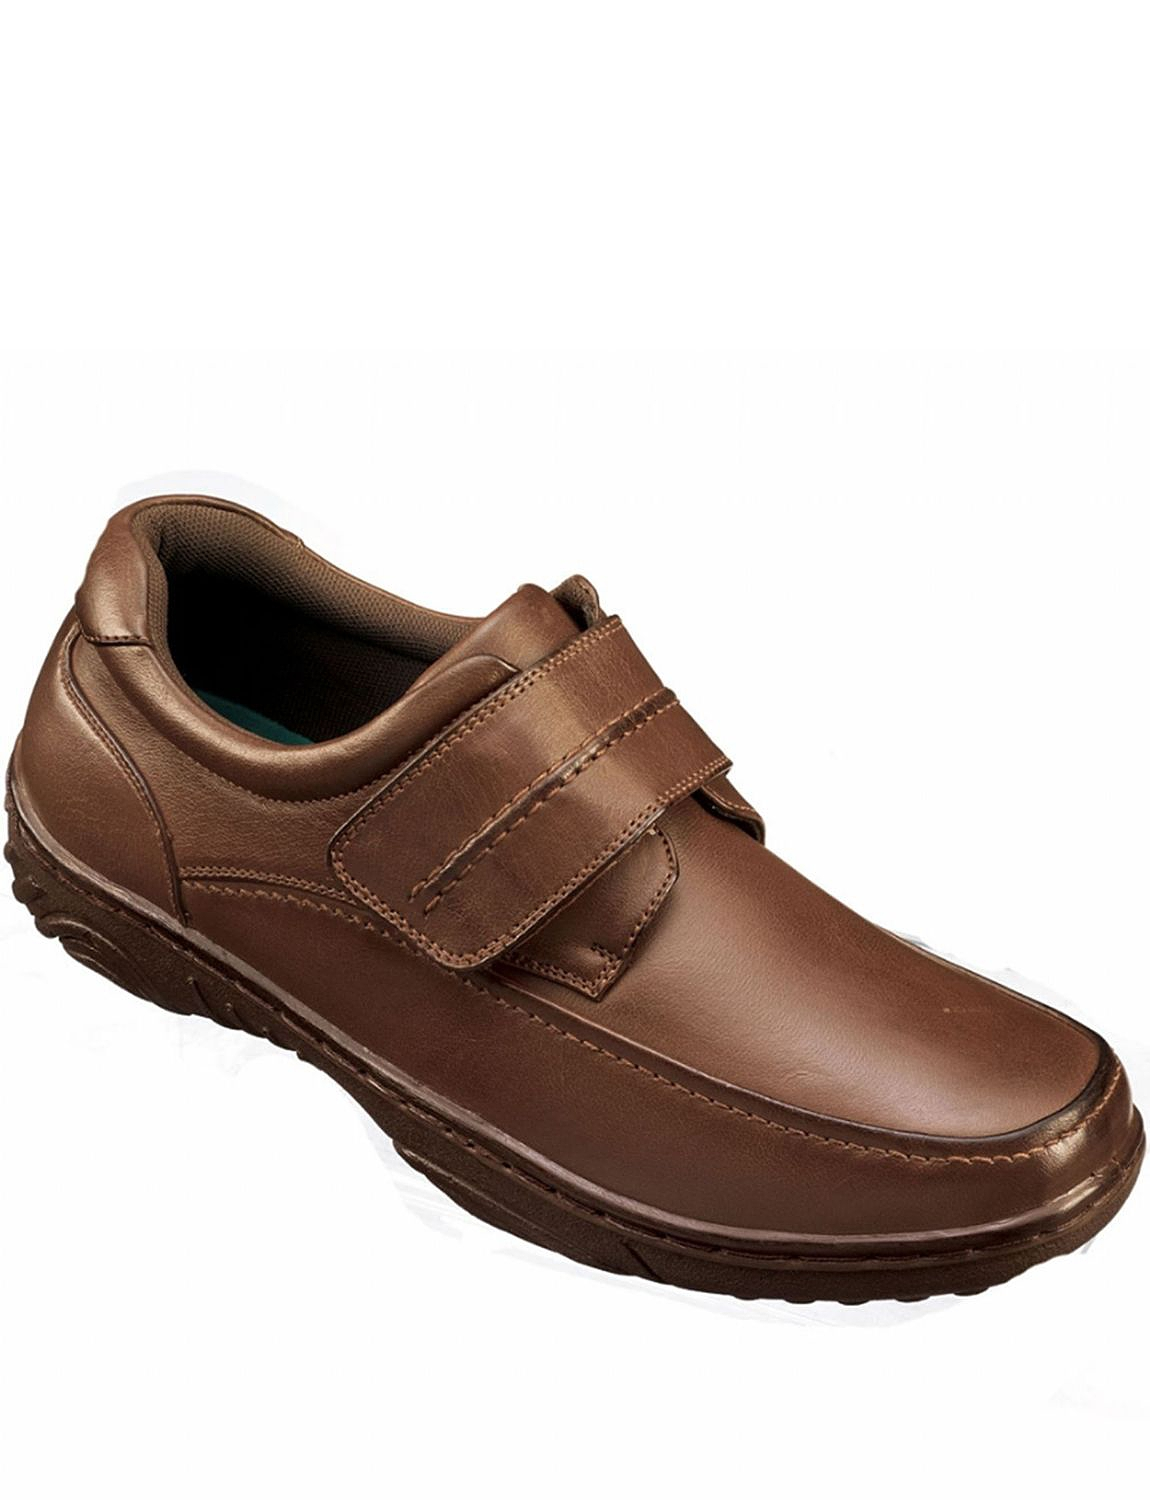 touch and casual comfort shoe menswear footwear